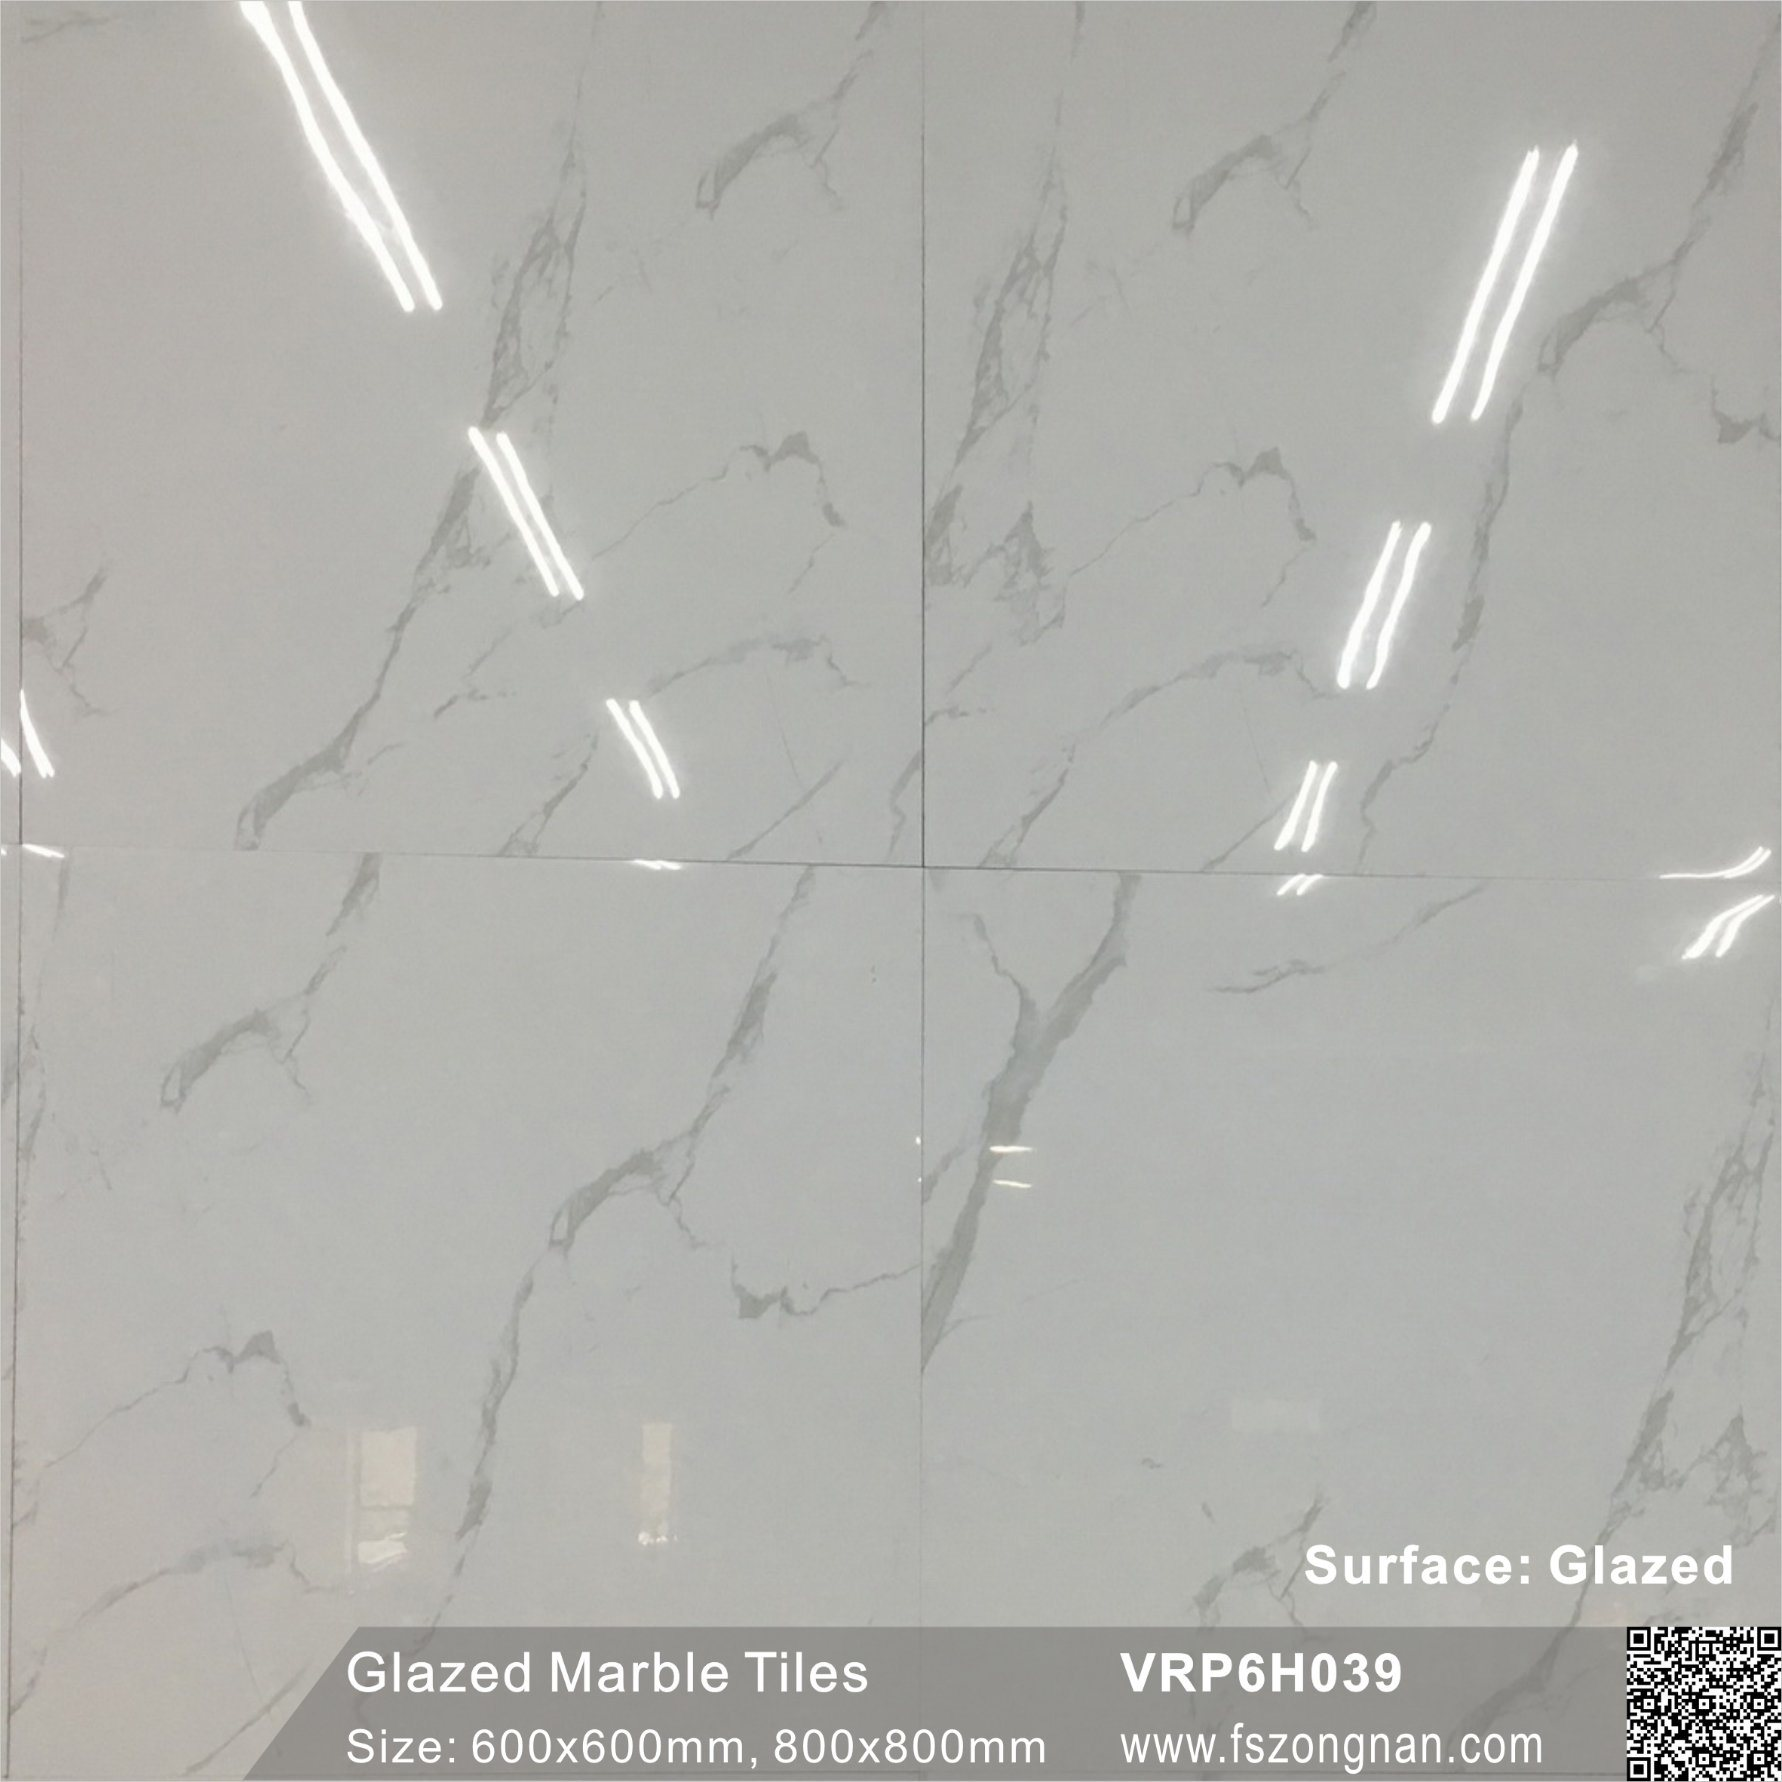 China Foshan Carrara White Glazed Marble Polished Porcelain Floor